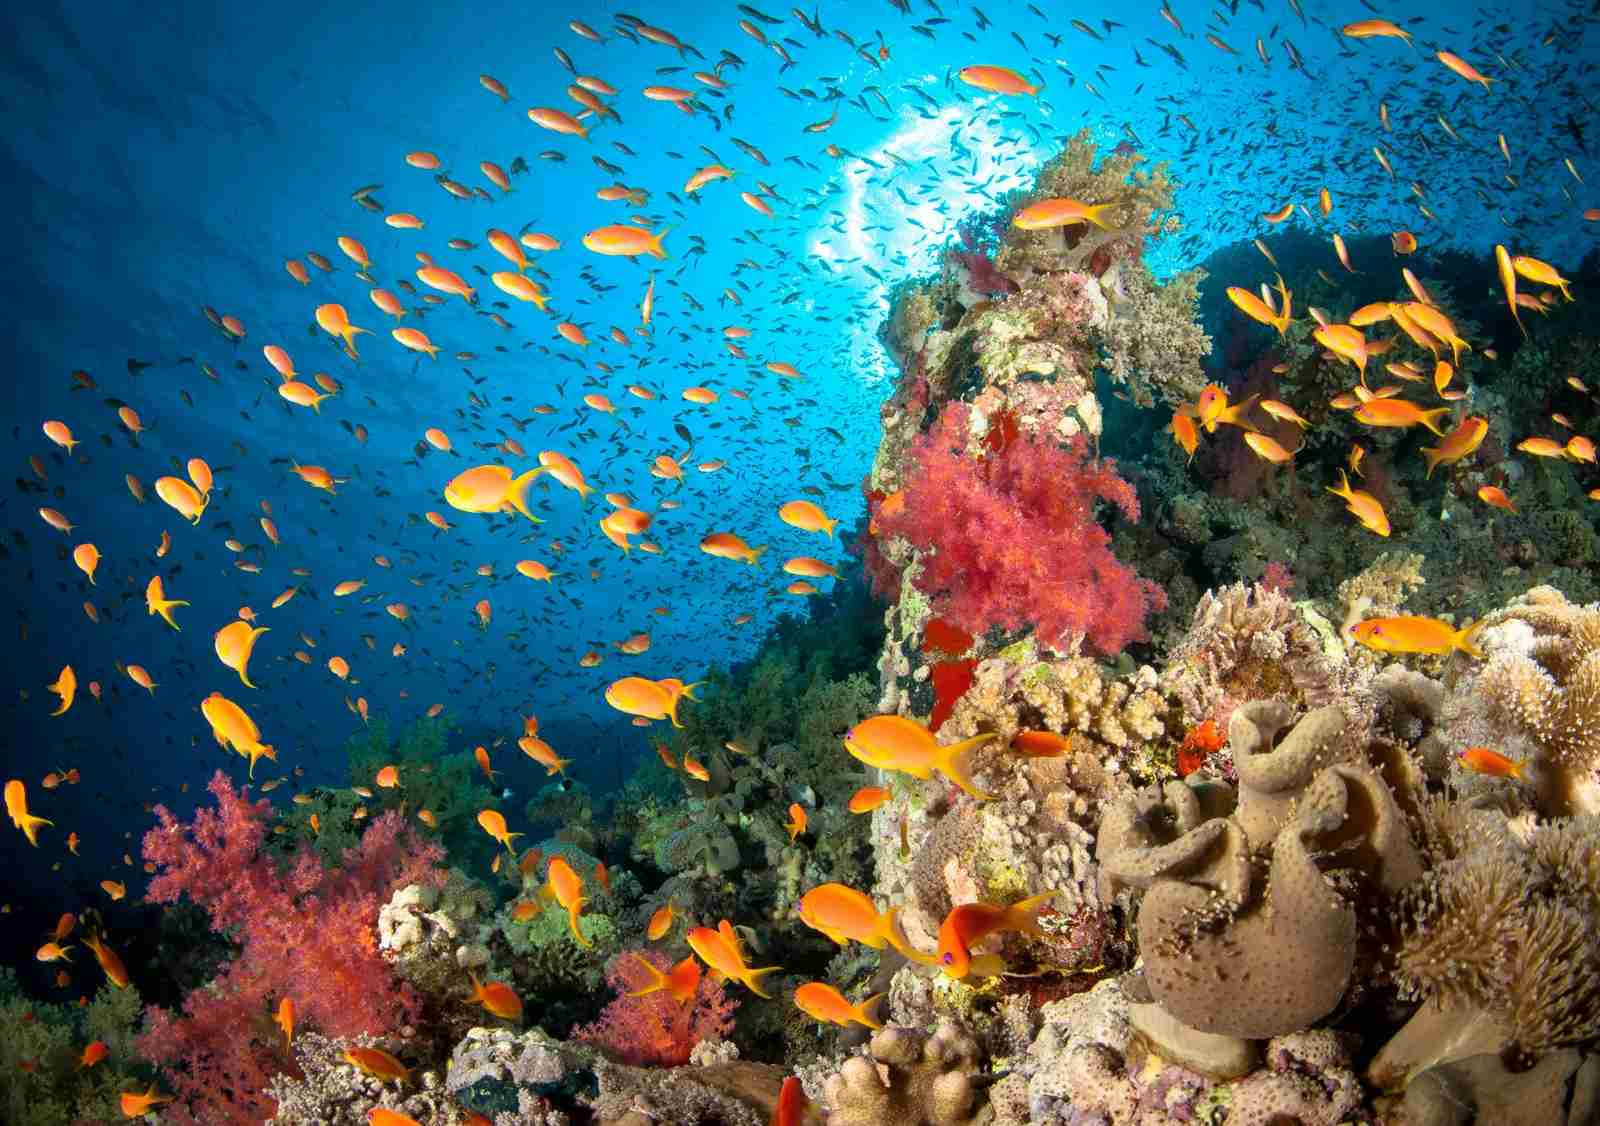 A thriving coral reef in the Red Sea, Egypt. (Photo via Getty Images)